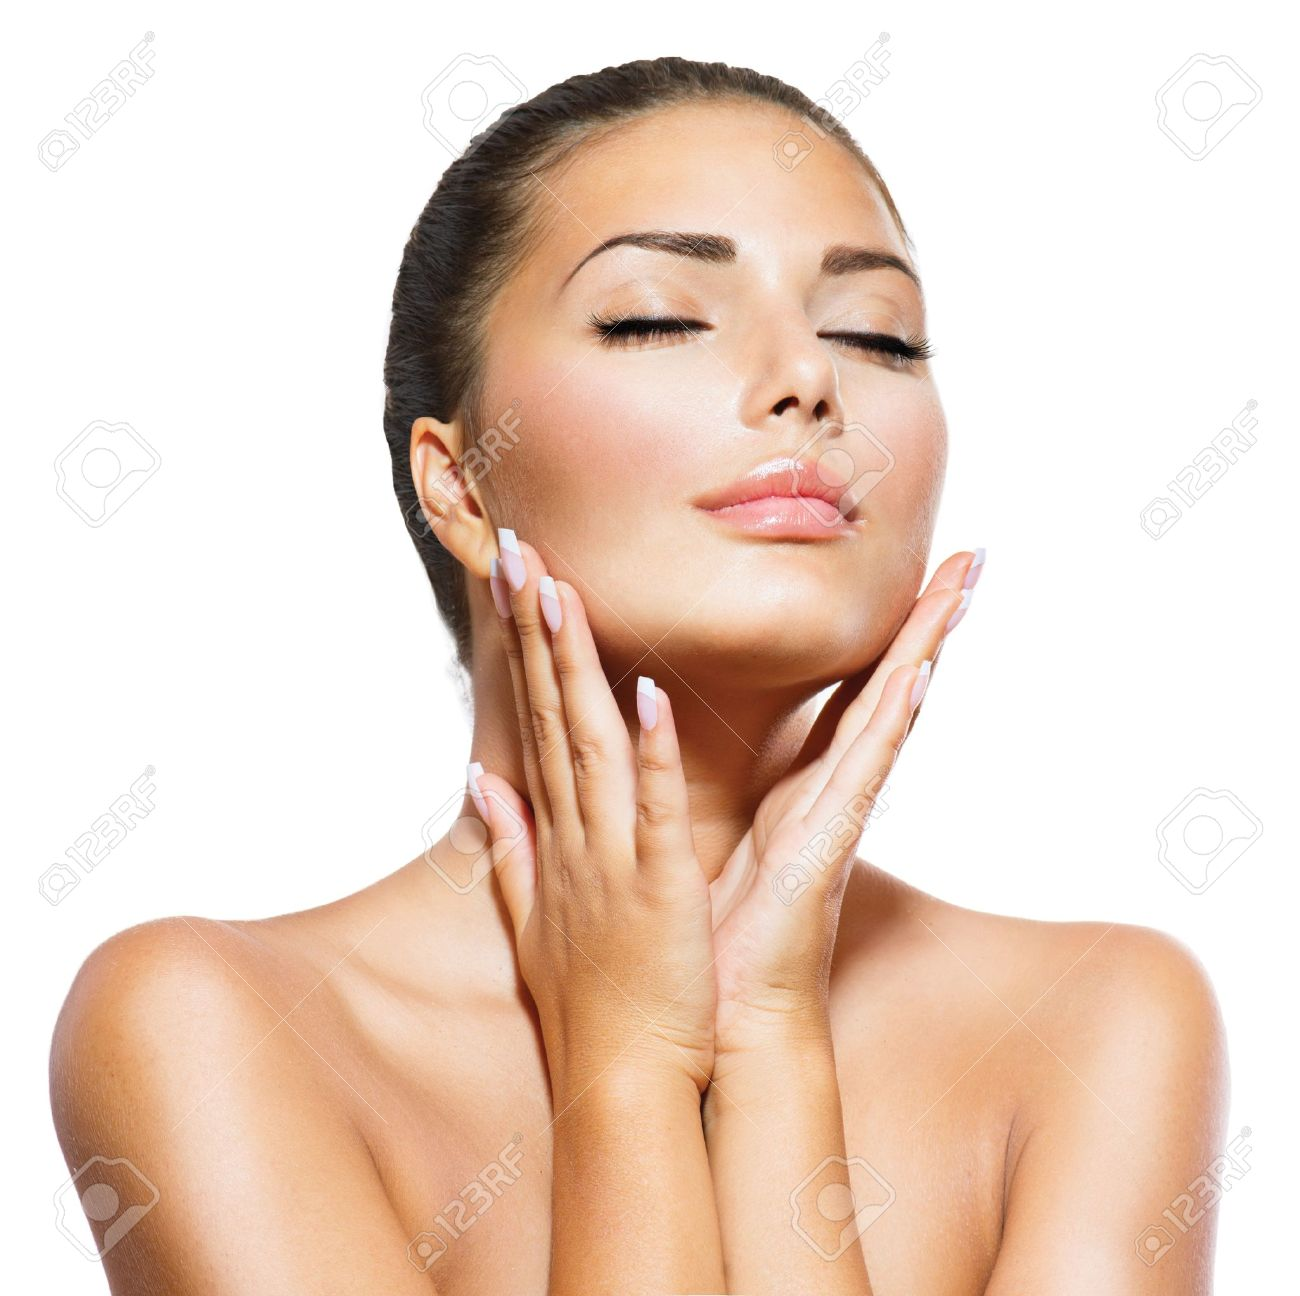 Beauty Portrait  Beautiful Spa Woman Touching her Face Stock Photo - 21386651